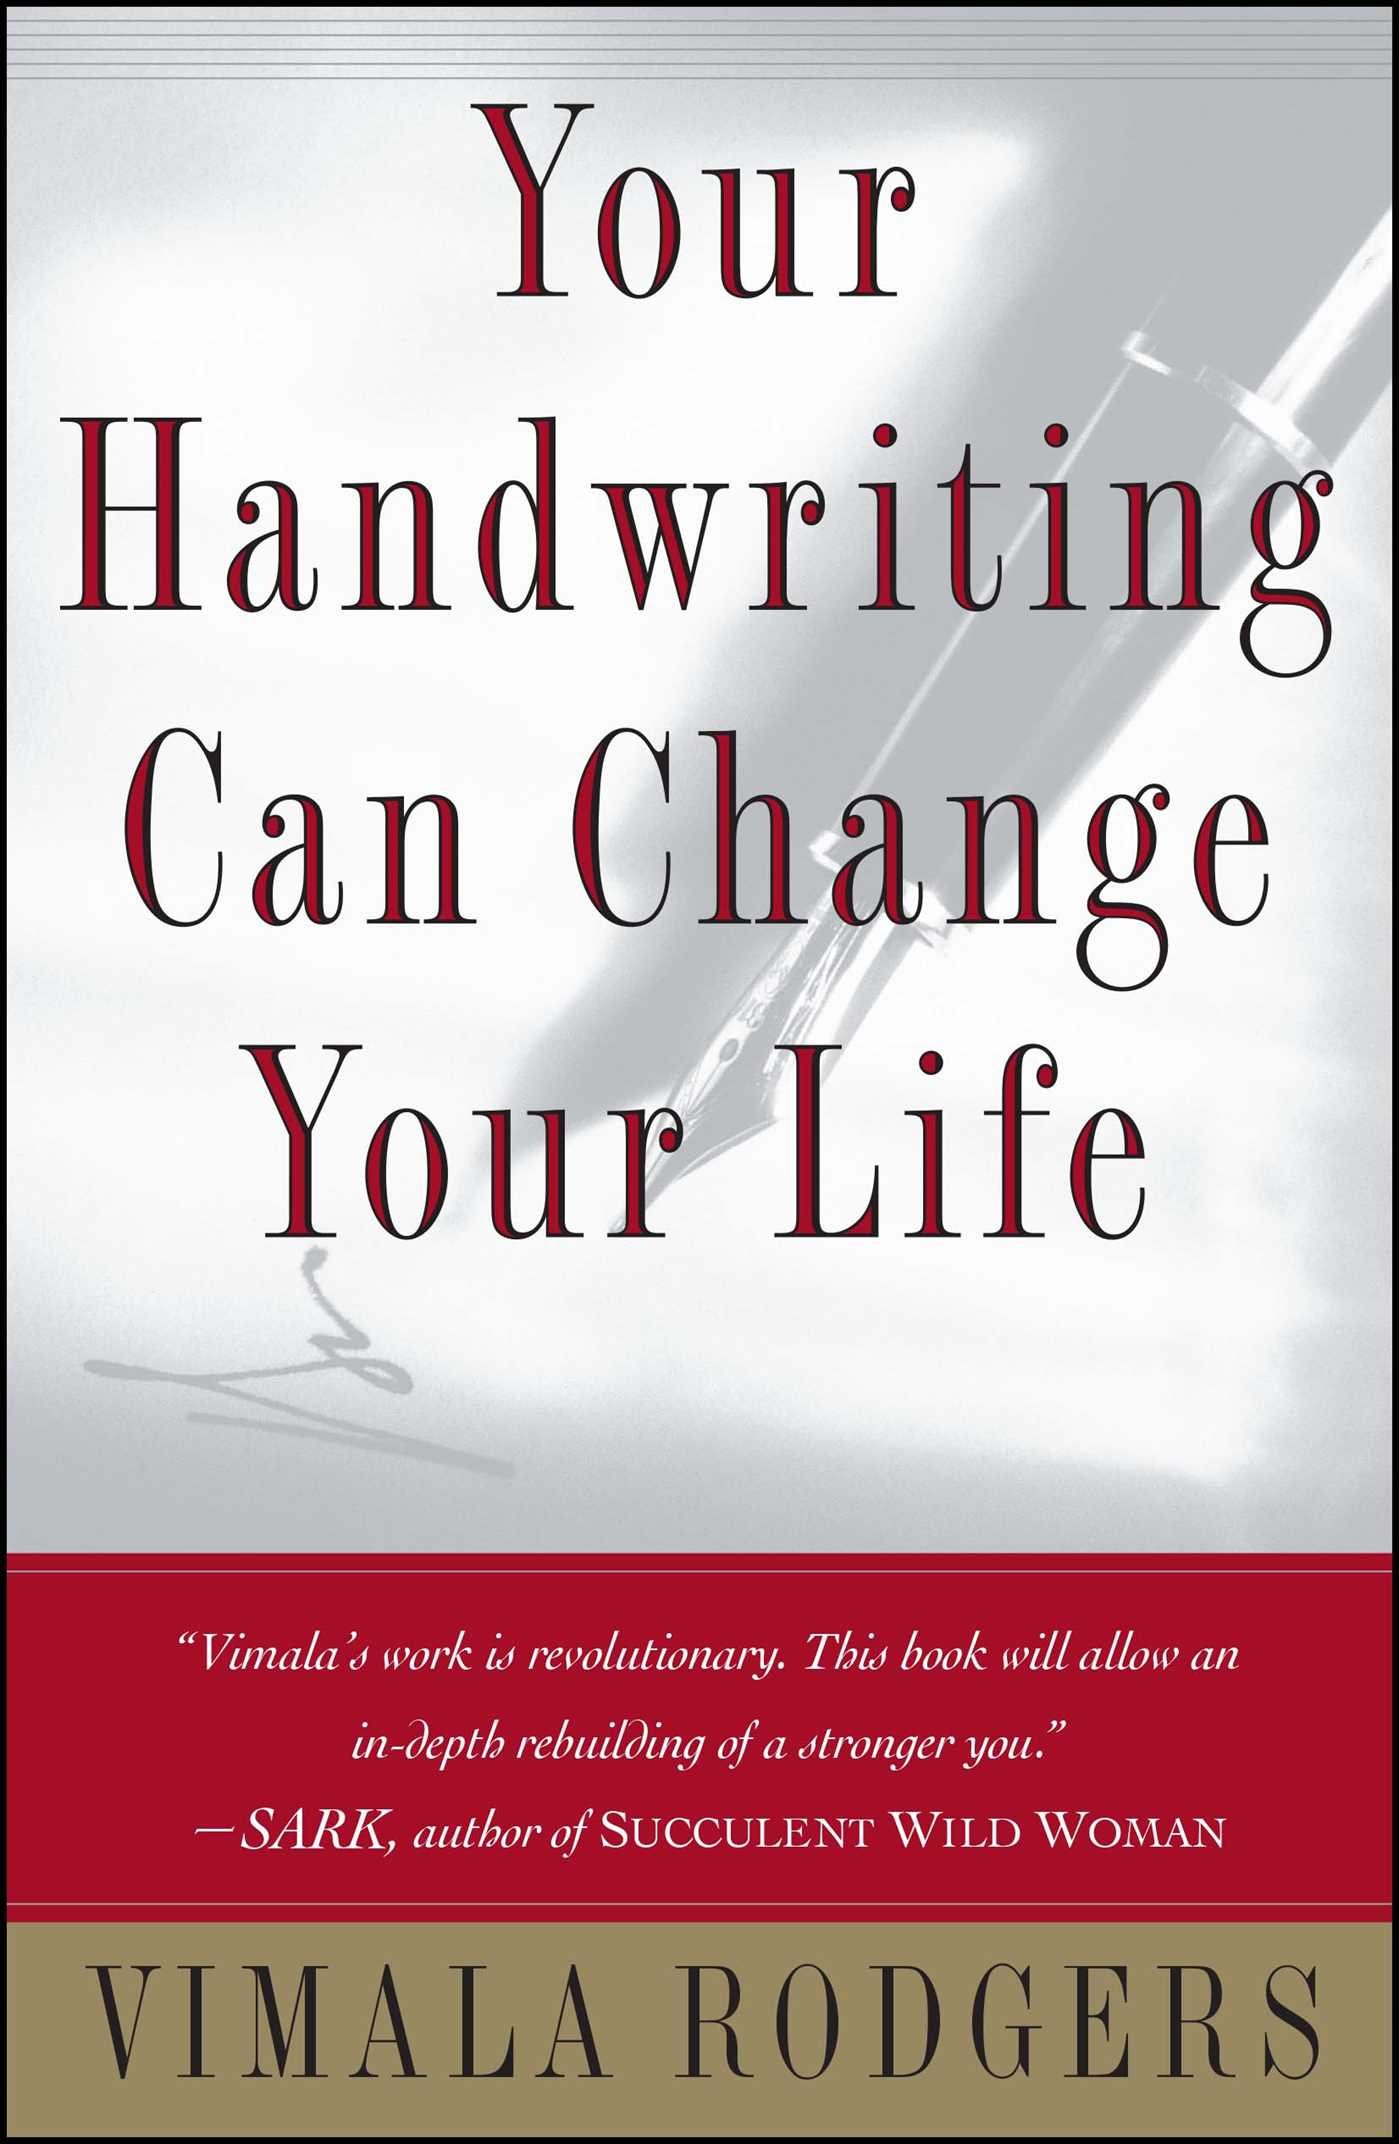 Your handwriting can change your life 9780684865416 hr